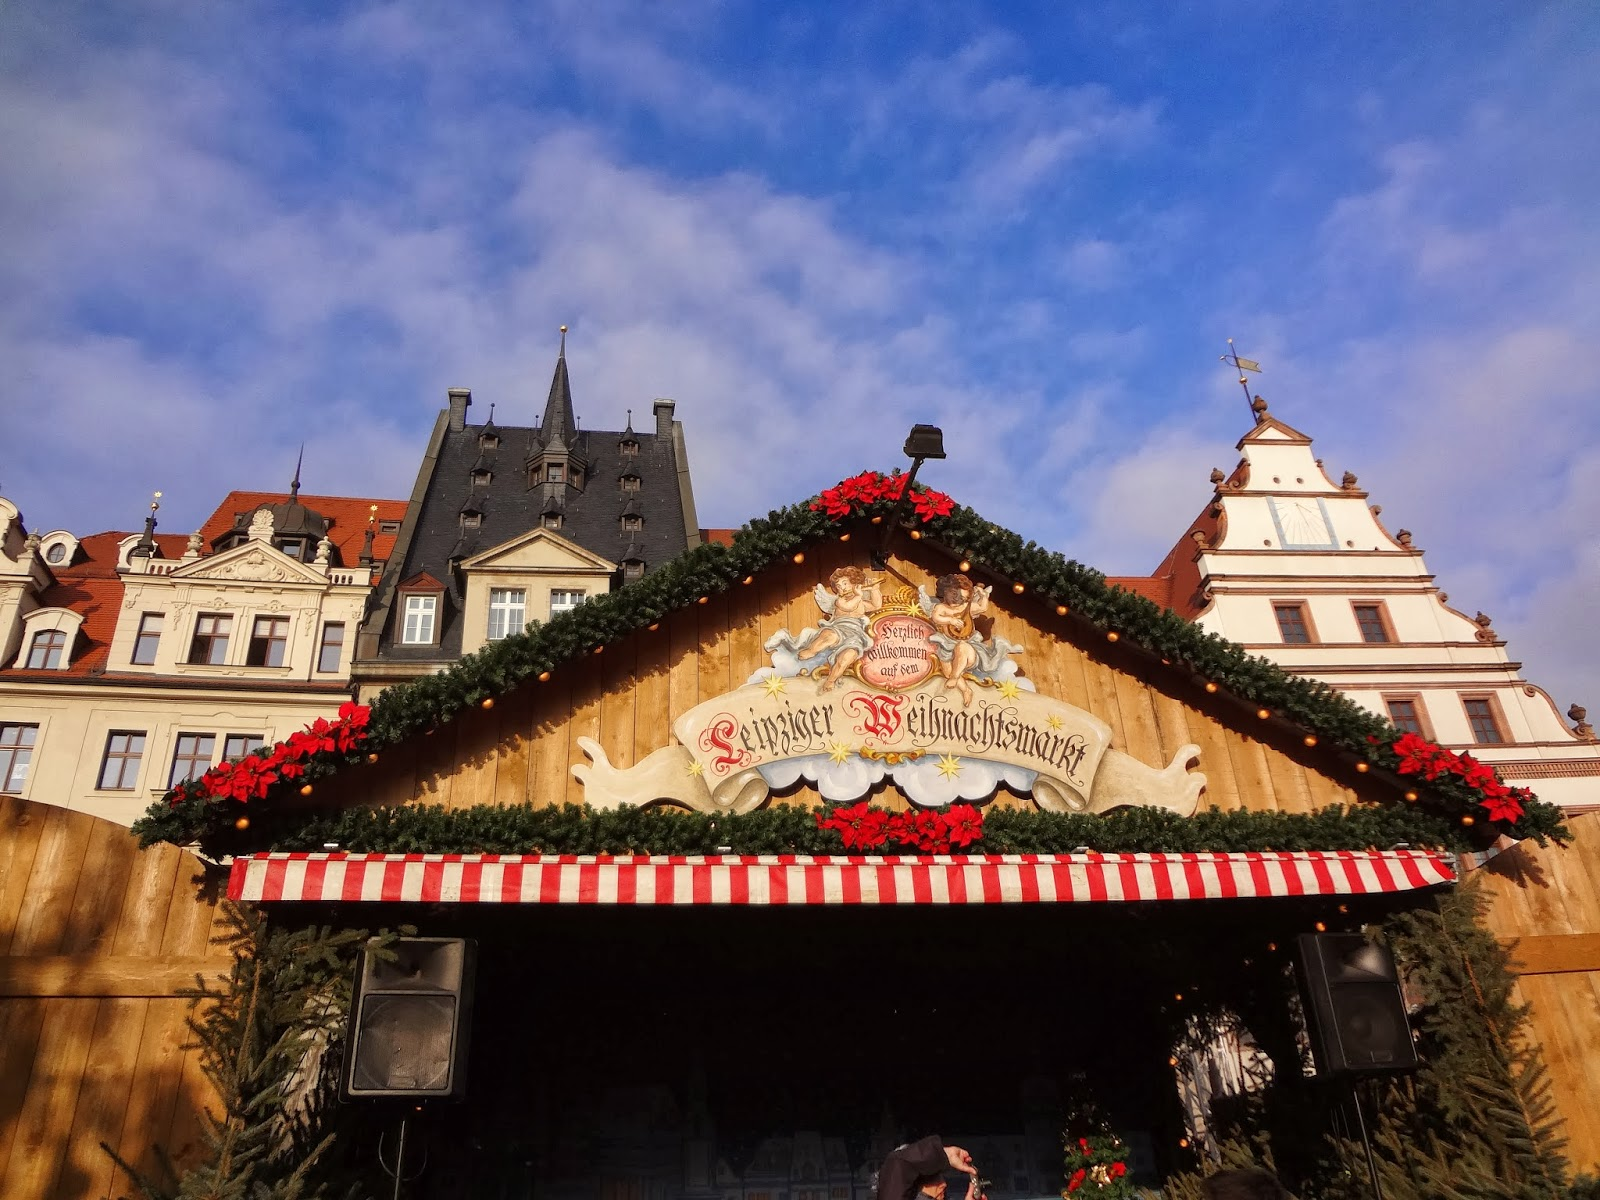 German Christmas Market.Newbies Guide To German Christmas Markets The German Way